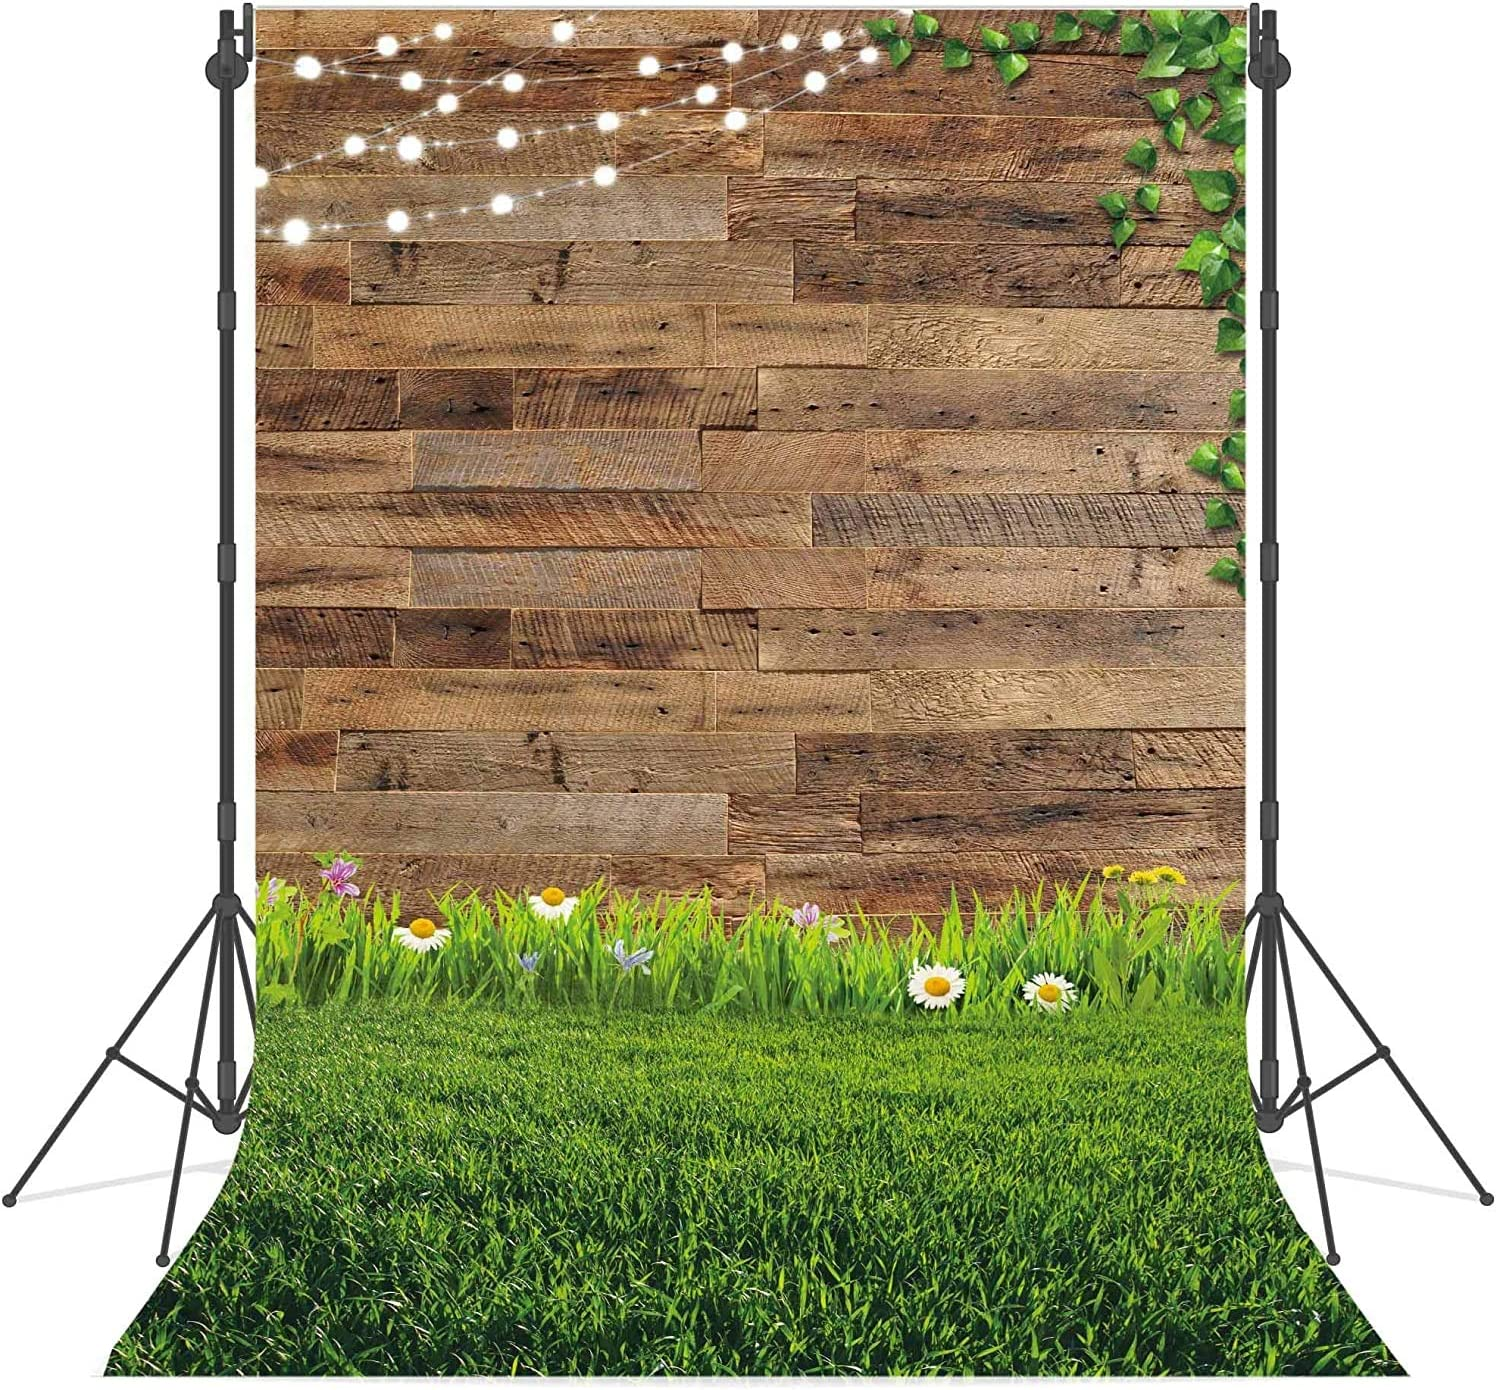 Haboke 5x7ft Soft Fabric Spring Rustic Wood Photography Backdrop Flower Grassland Newborn Baby Shower Photoshoot Background Party Decor Family Portrait Photo Booth Props